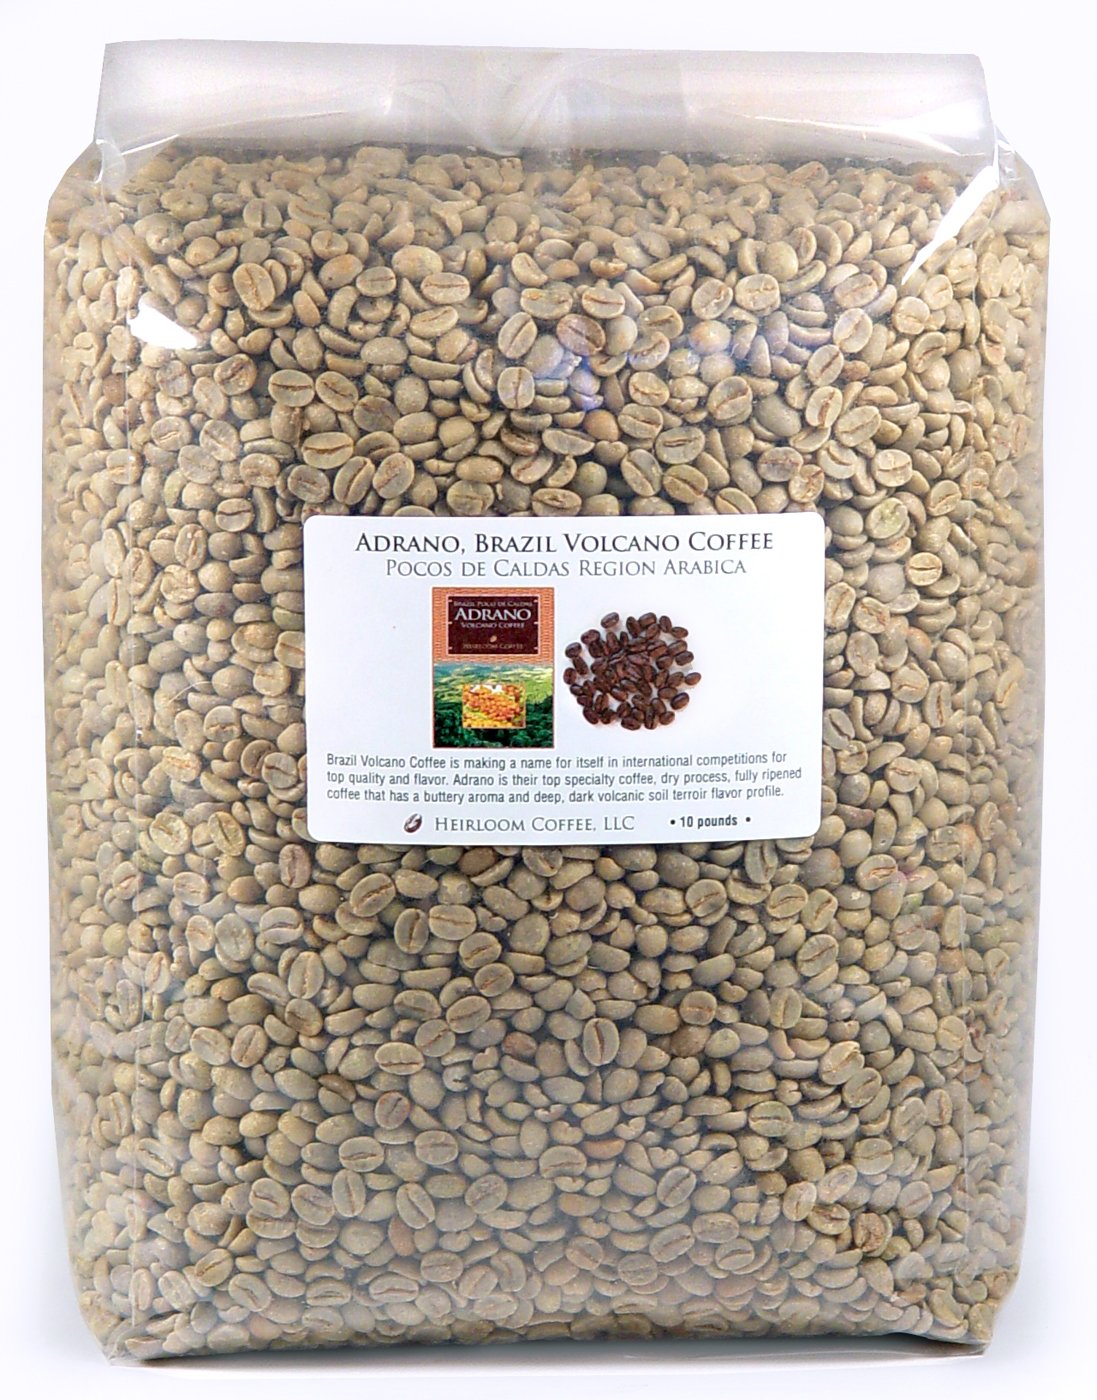 Brazil Adrano Volcano Coffee, Green Unroasted Coffee Beans (10 LB) by Heirloom Coffee LLC